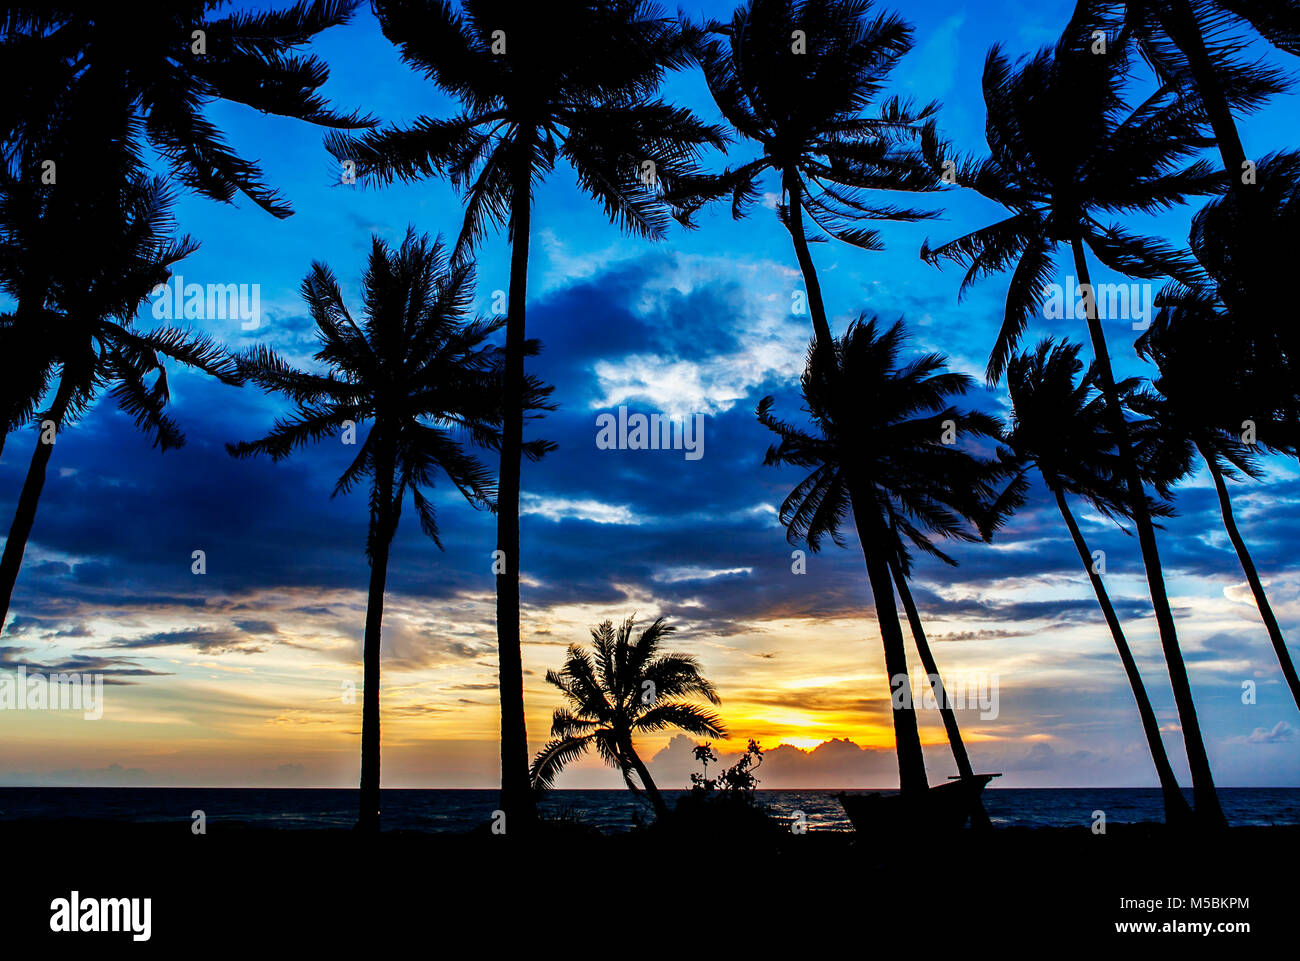 Sunset, Silhouette of Coconut tree on Trường beach,  Long Beach. Phu Quoc island, Kien Giang, Vietnam. - Stock Image